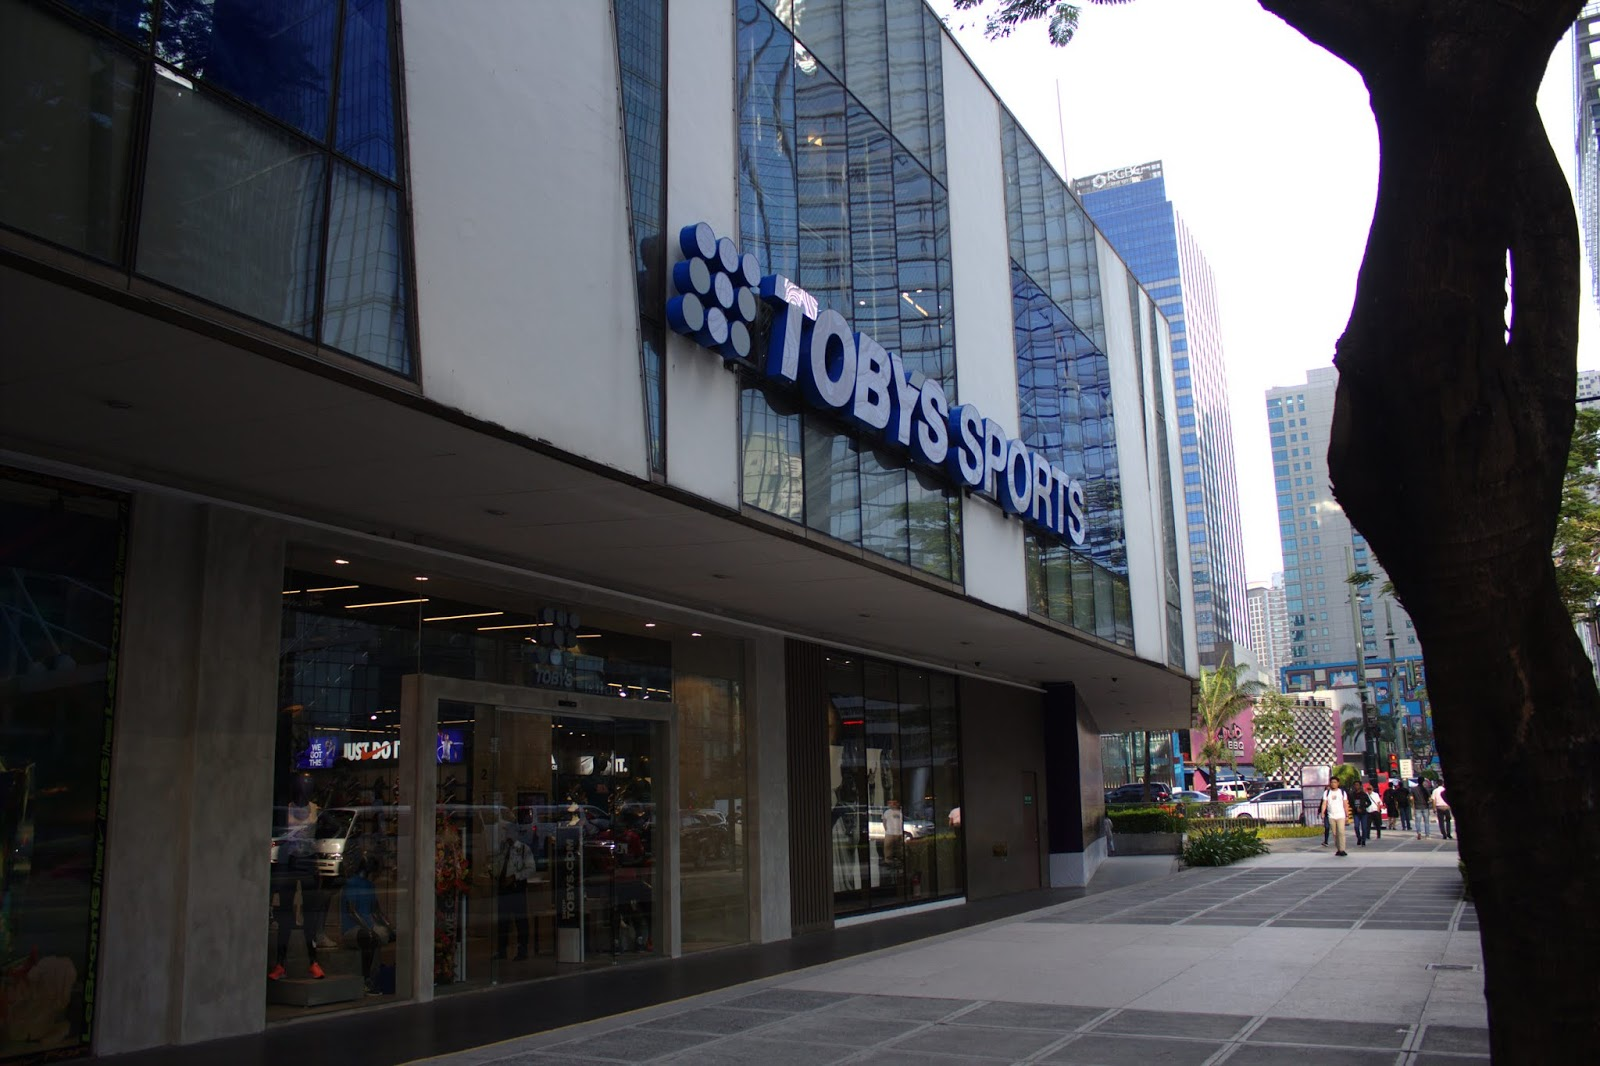 Toby s Sports Opens Flagship Store in BGC 5222b582d5